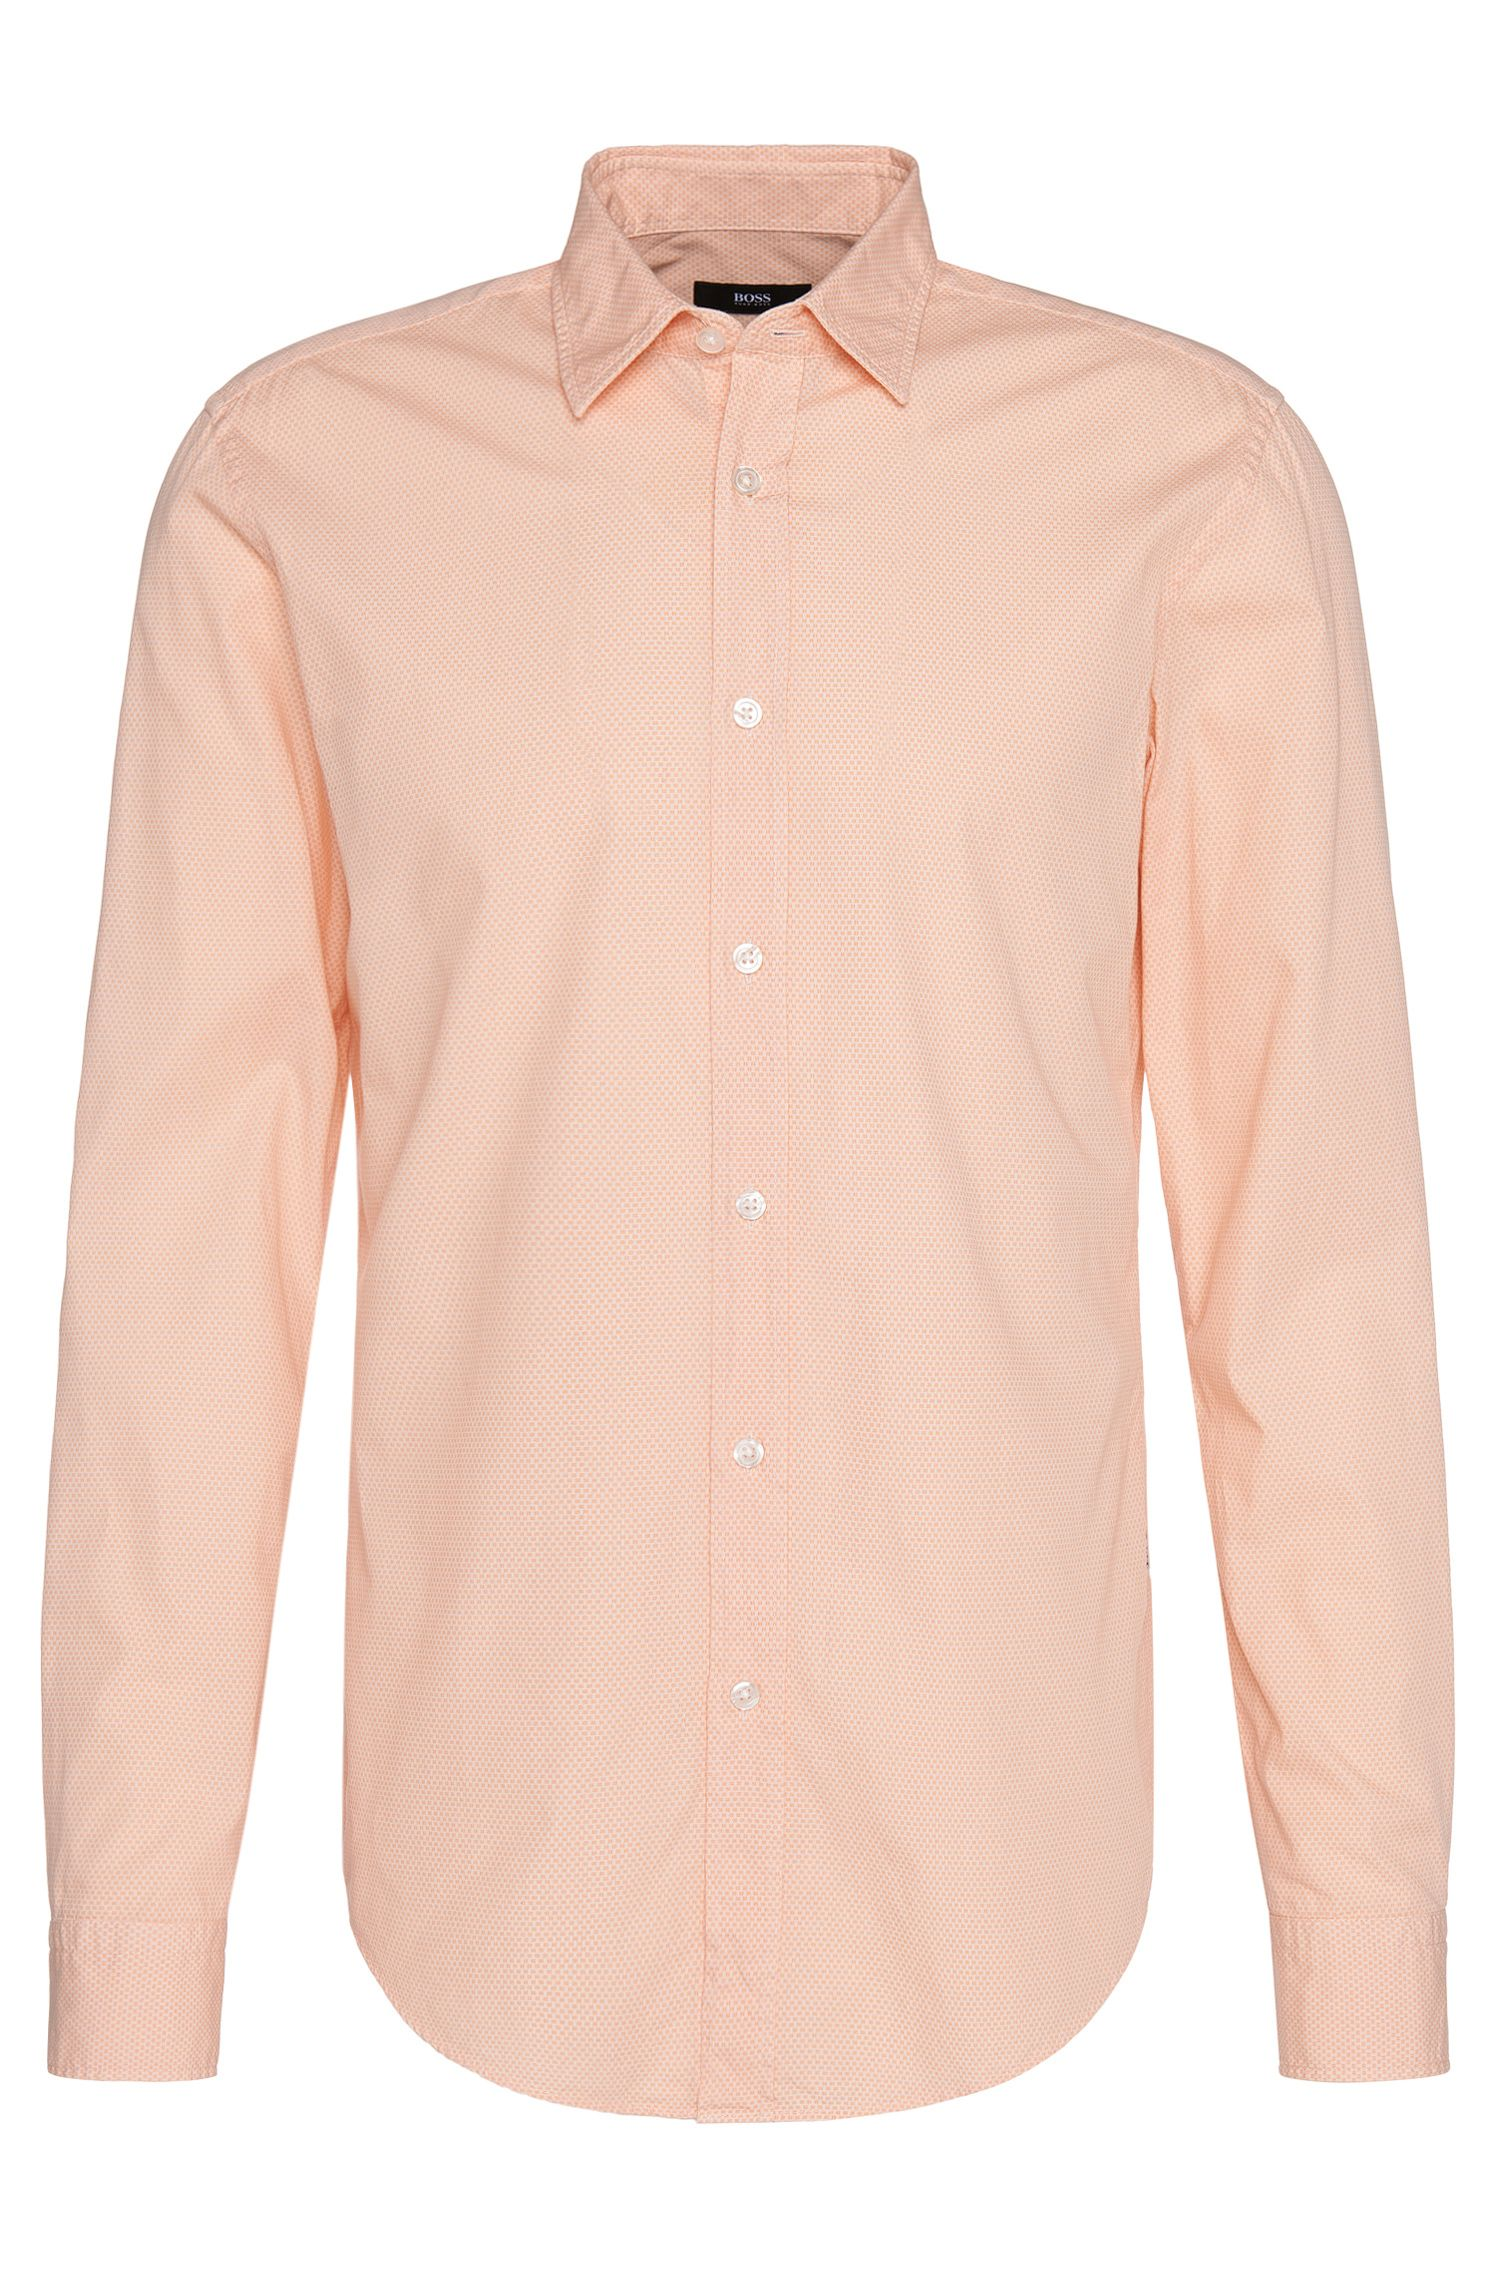 'Ronni' | Slim Fit, Italain Cotton Patterned Button Down Shirt